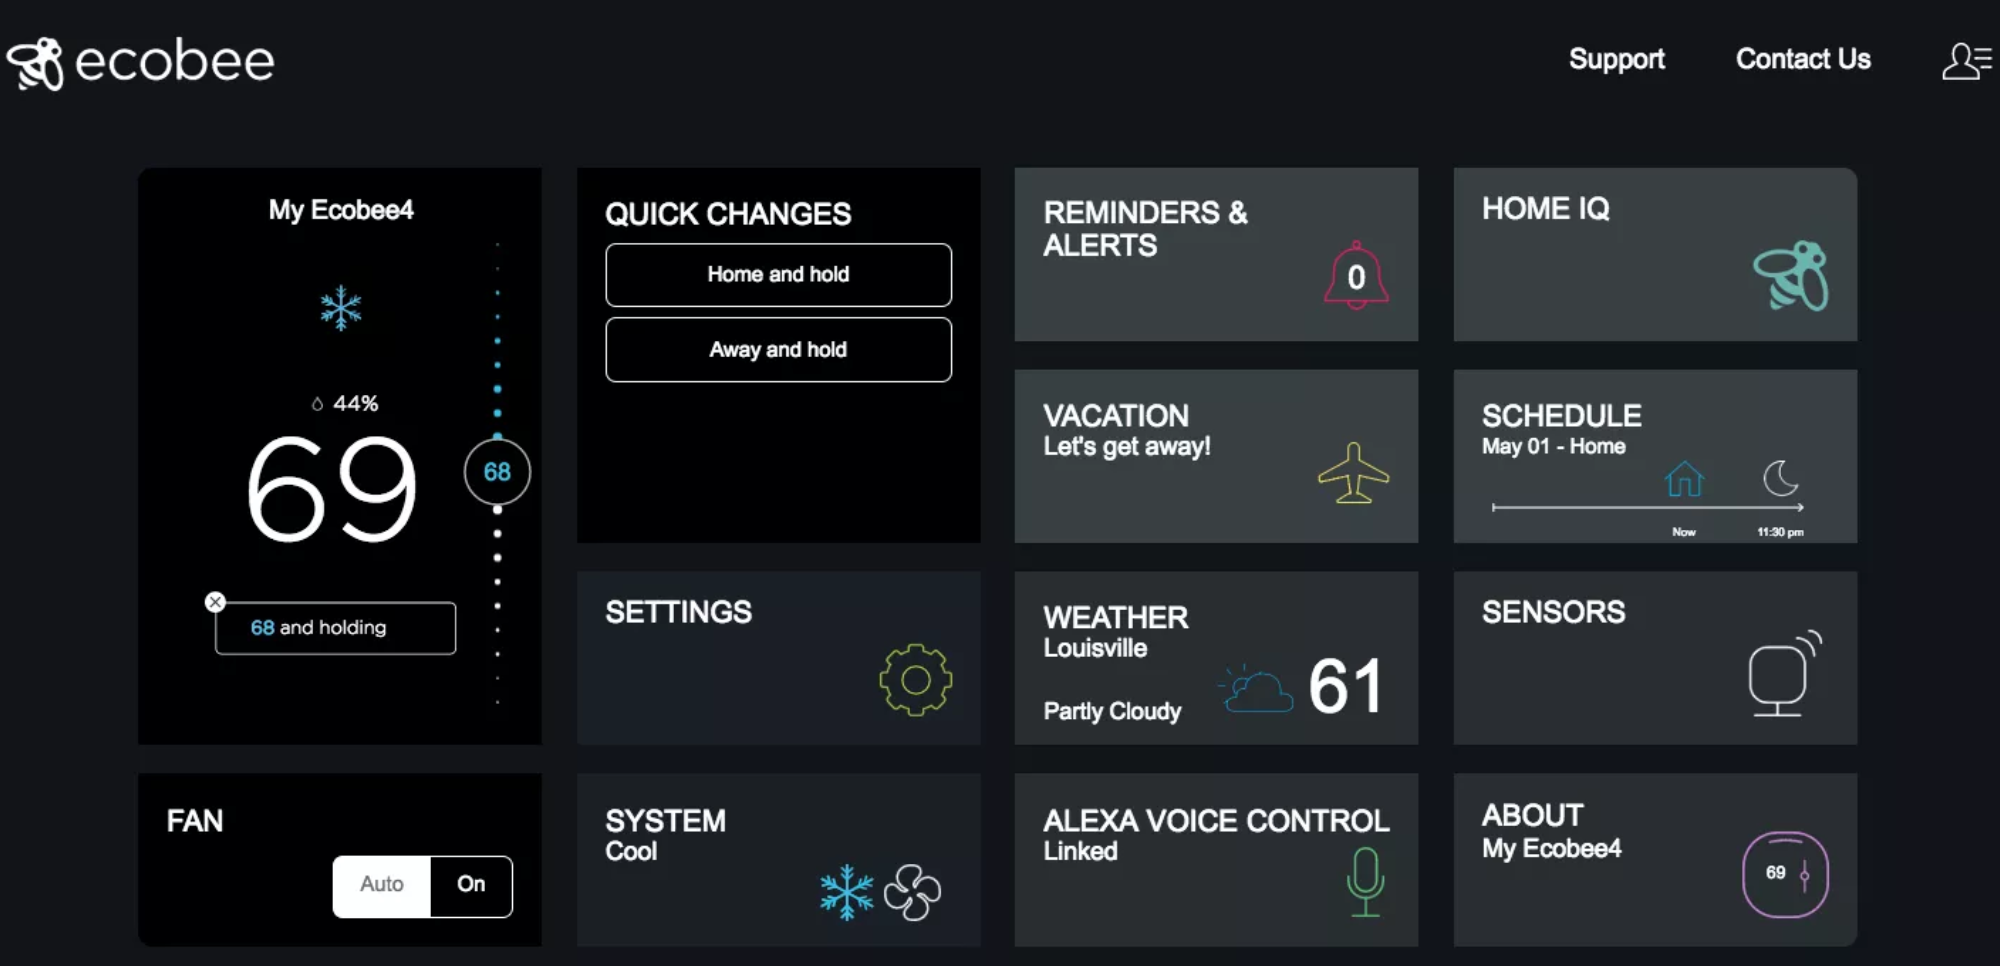 Ecobee_4_Smart_Thermostat_with_built-in_Alexa_admin_panel.PNG